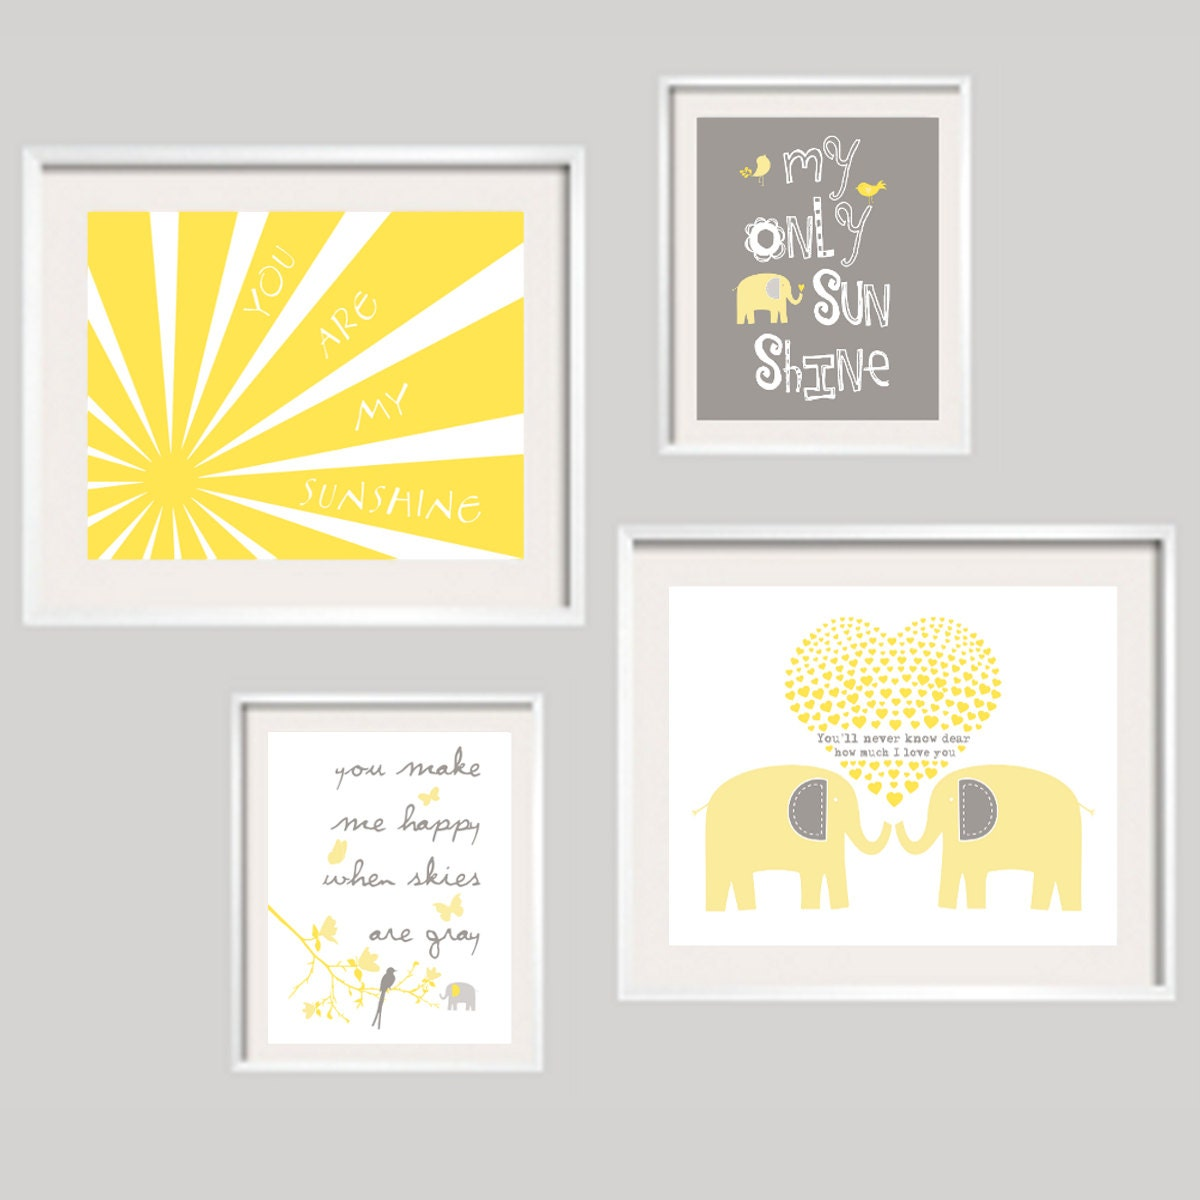 You are my sunshine baby wall decor Yellow Grey Elephant